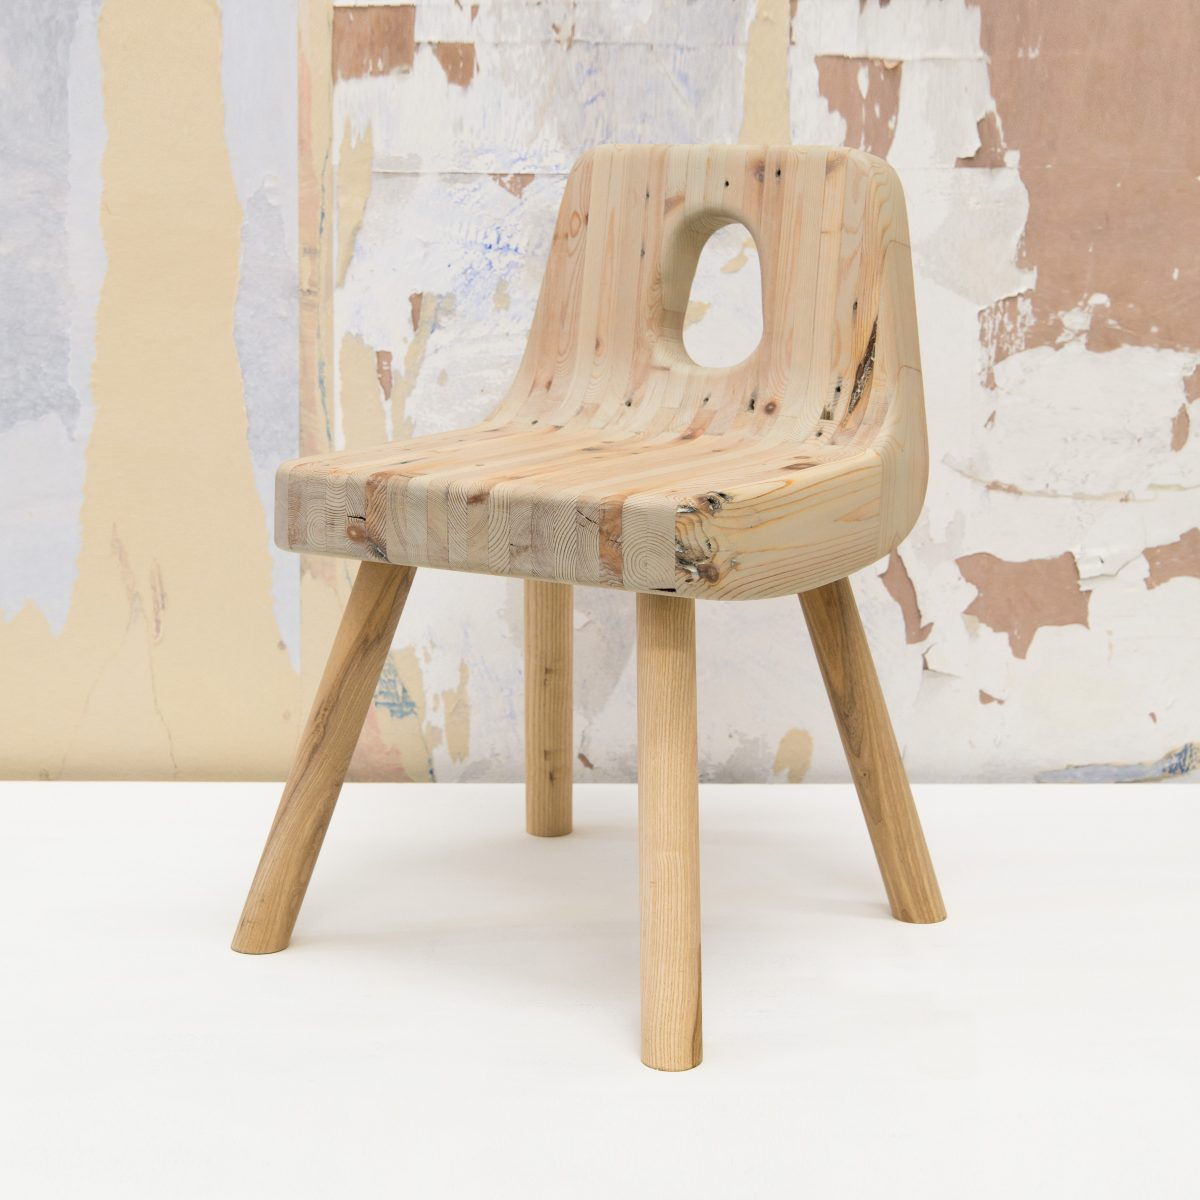 Jan Hendzel Studio good day chair-6-2